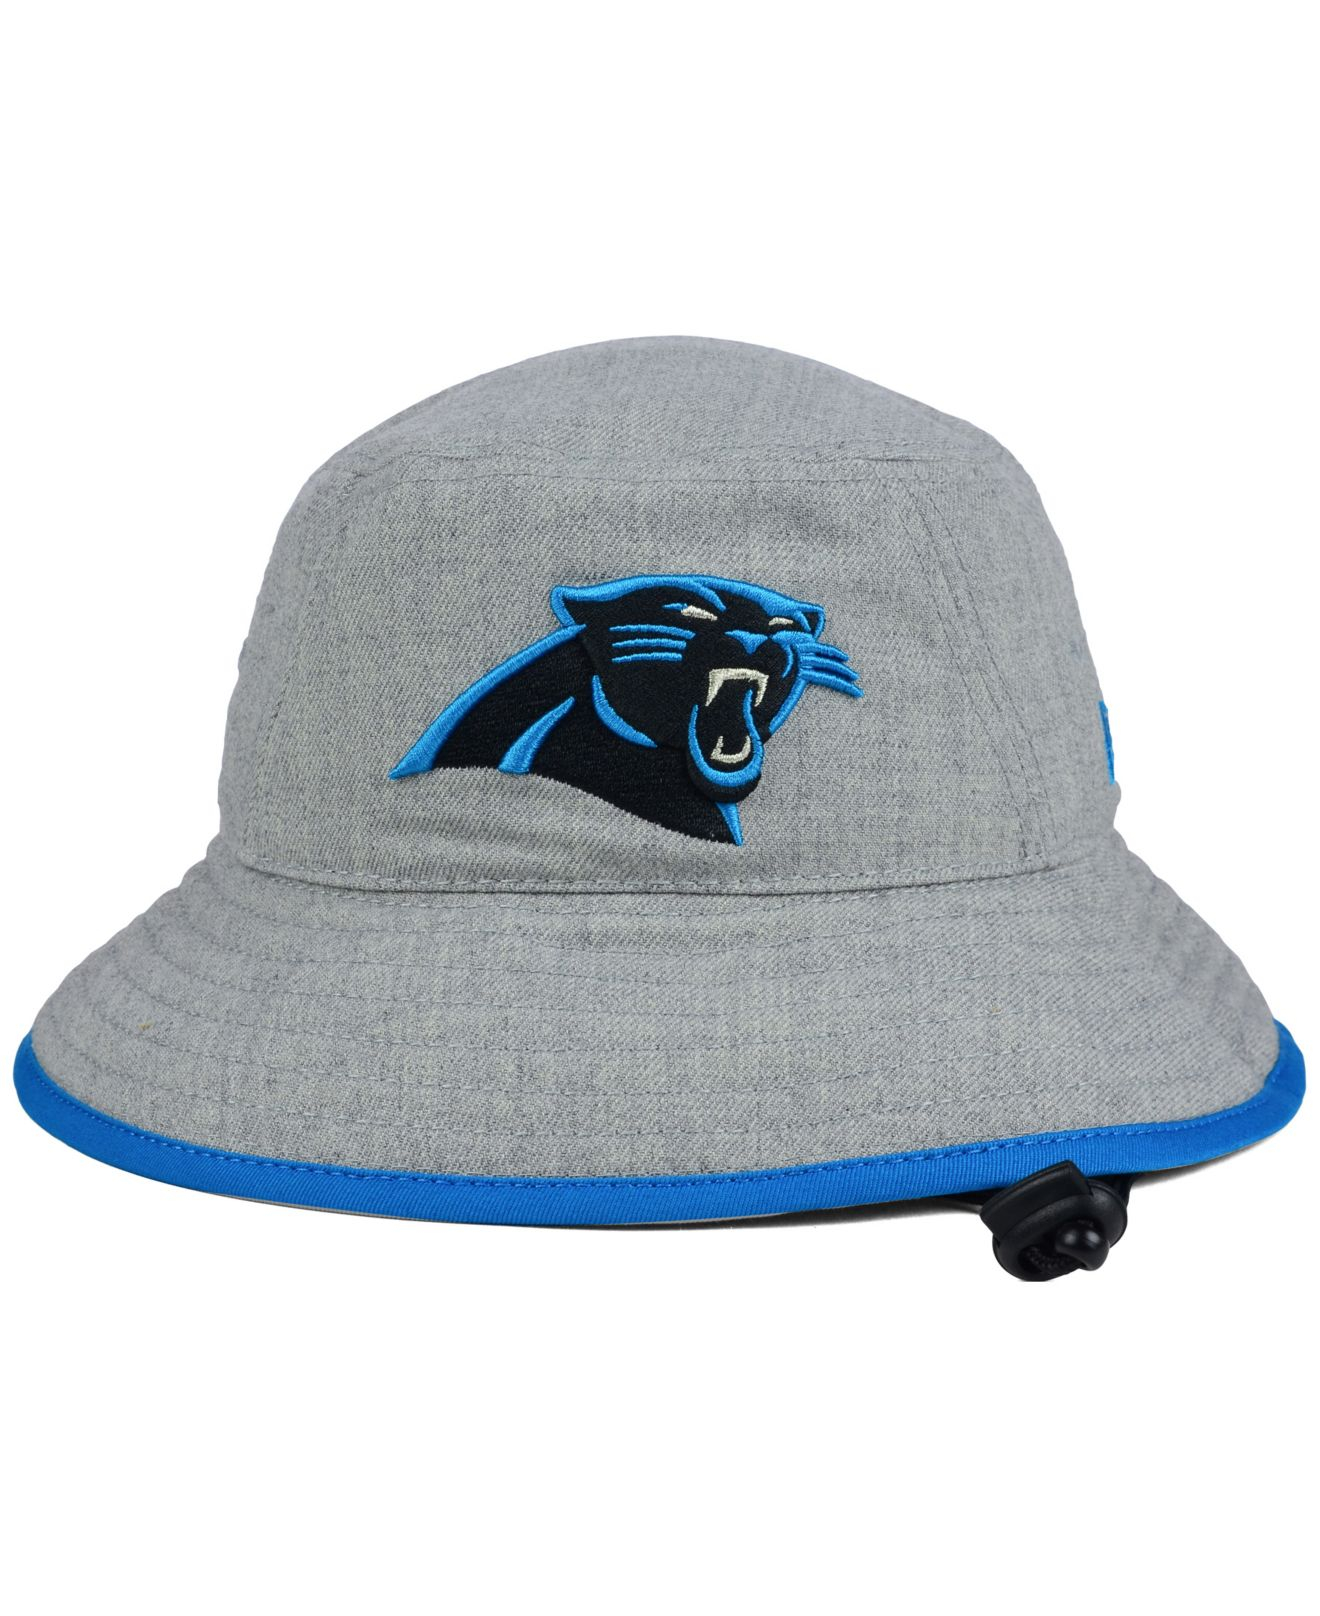 Lyst - KTZ Carolina Panthers Nfl Heather Gray Bucket Hat in Gray for Men 72abe2b4d